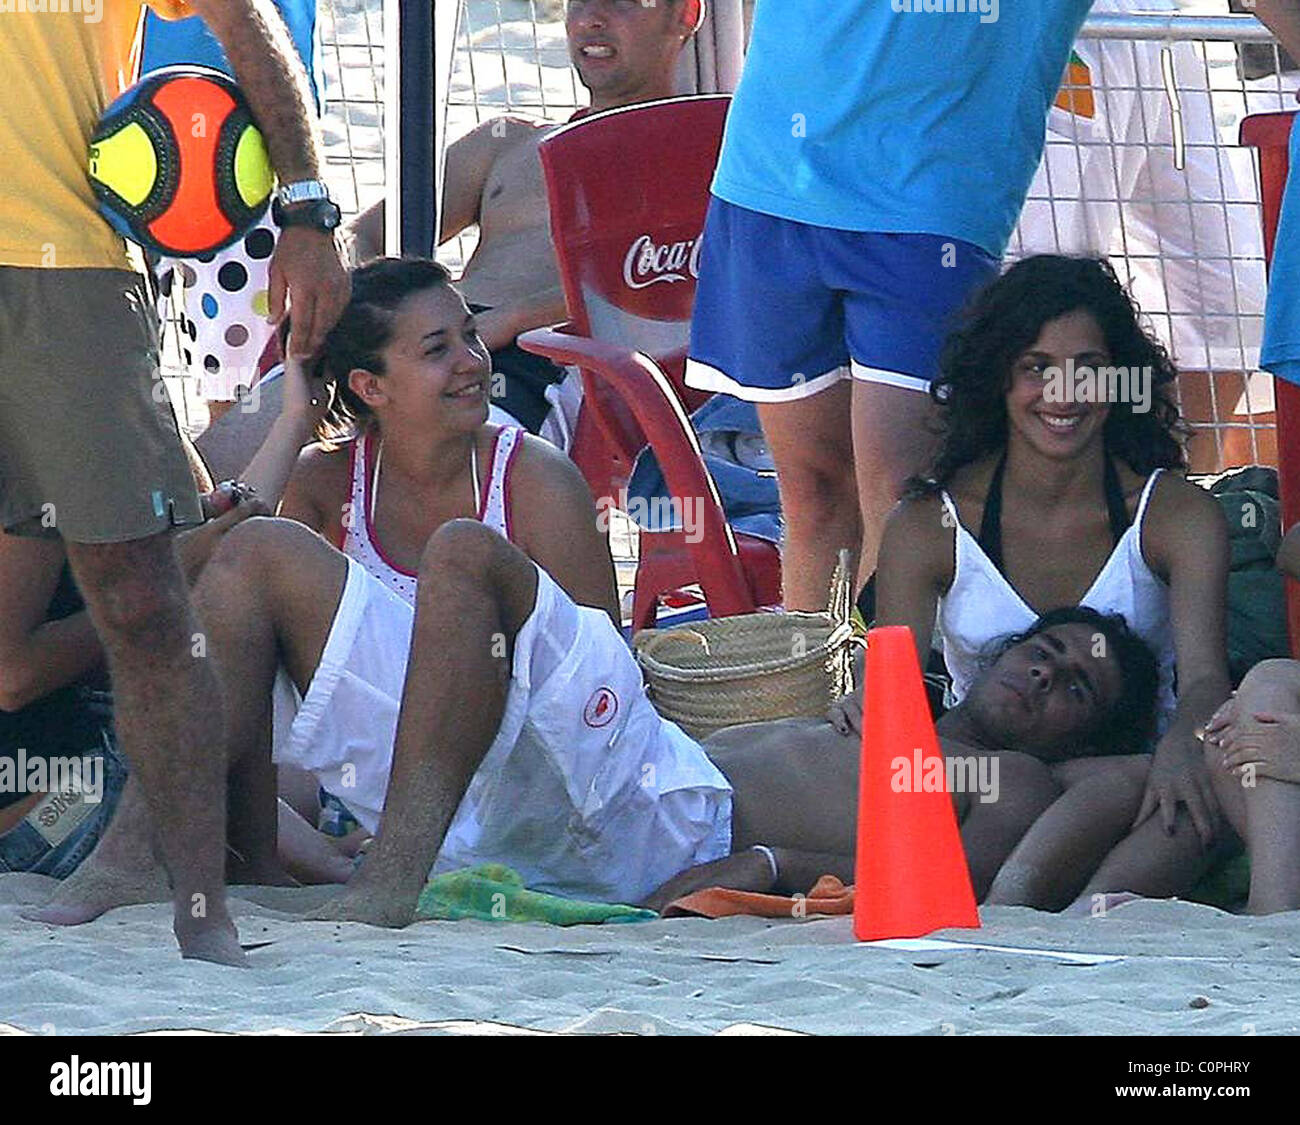 Rafa Nadal At The Beach With His Girlfriend Maria Francisca Perello Stock Photo Alamy